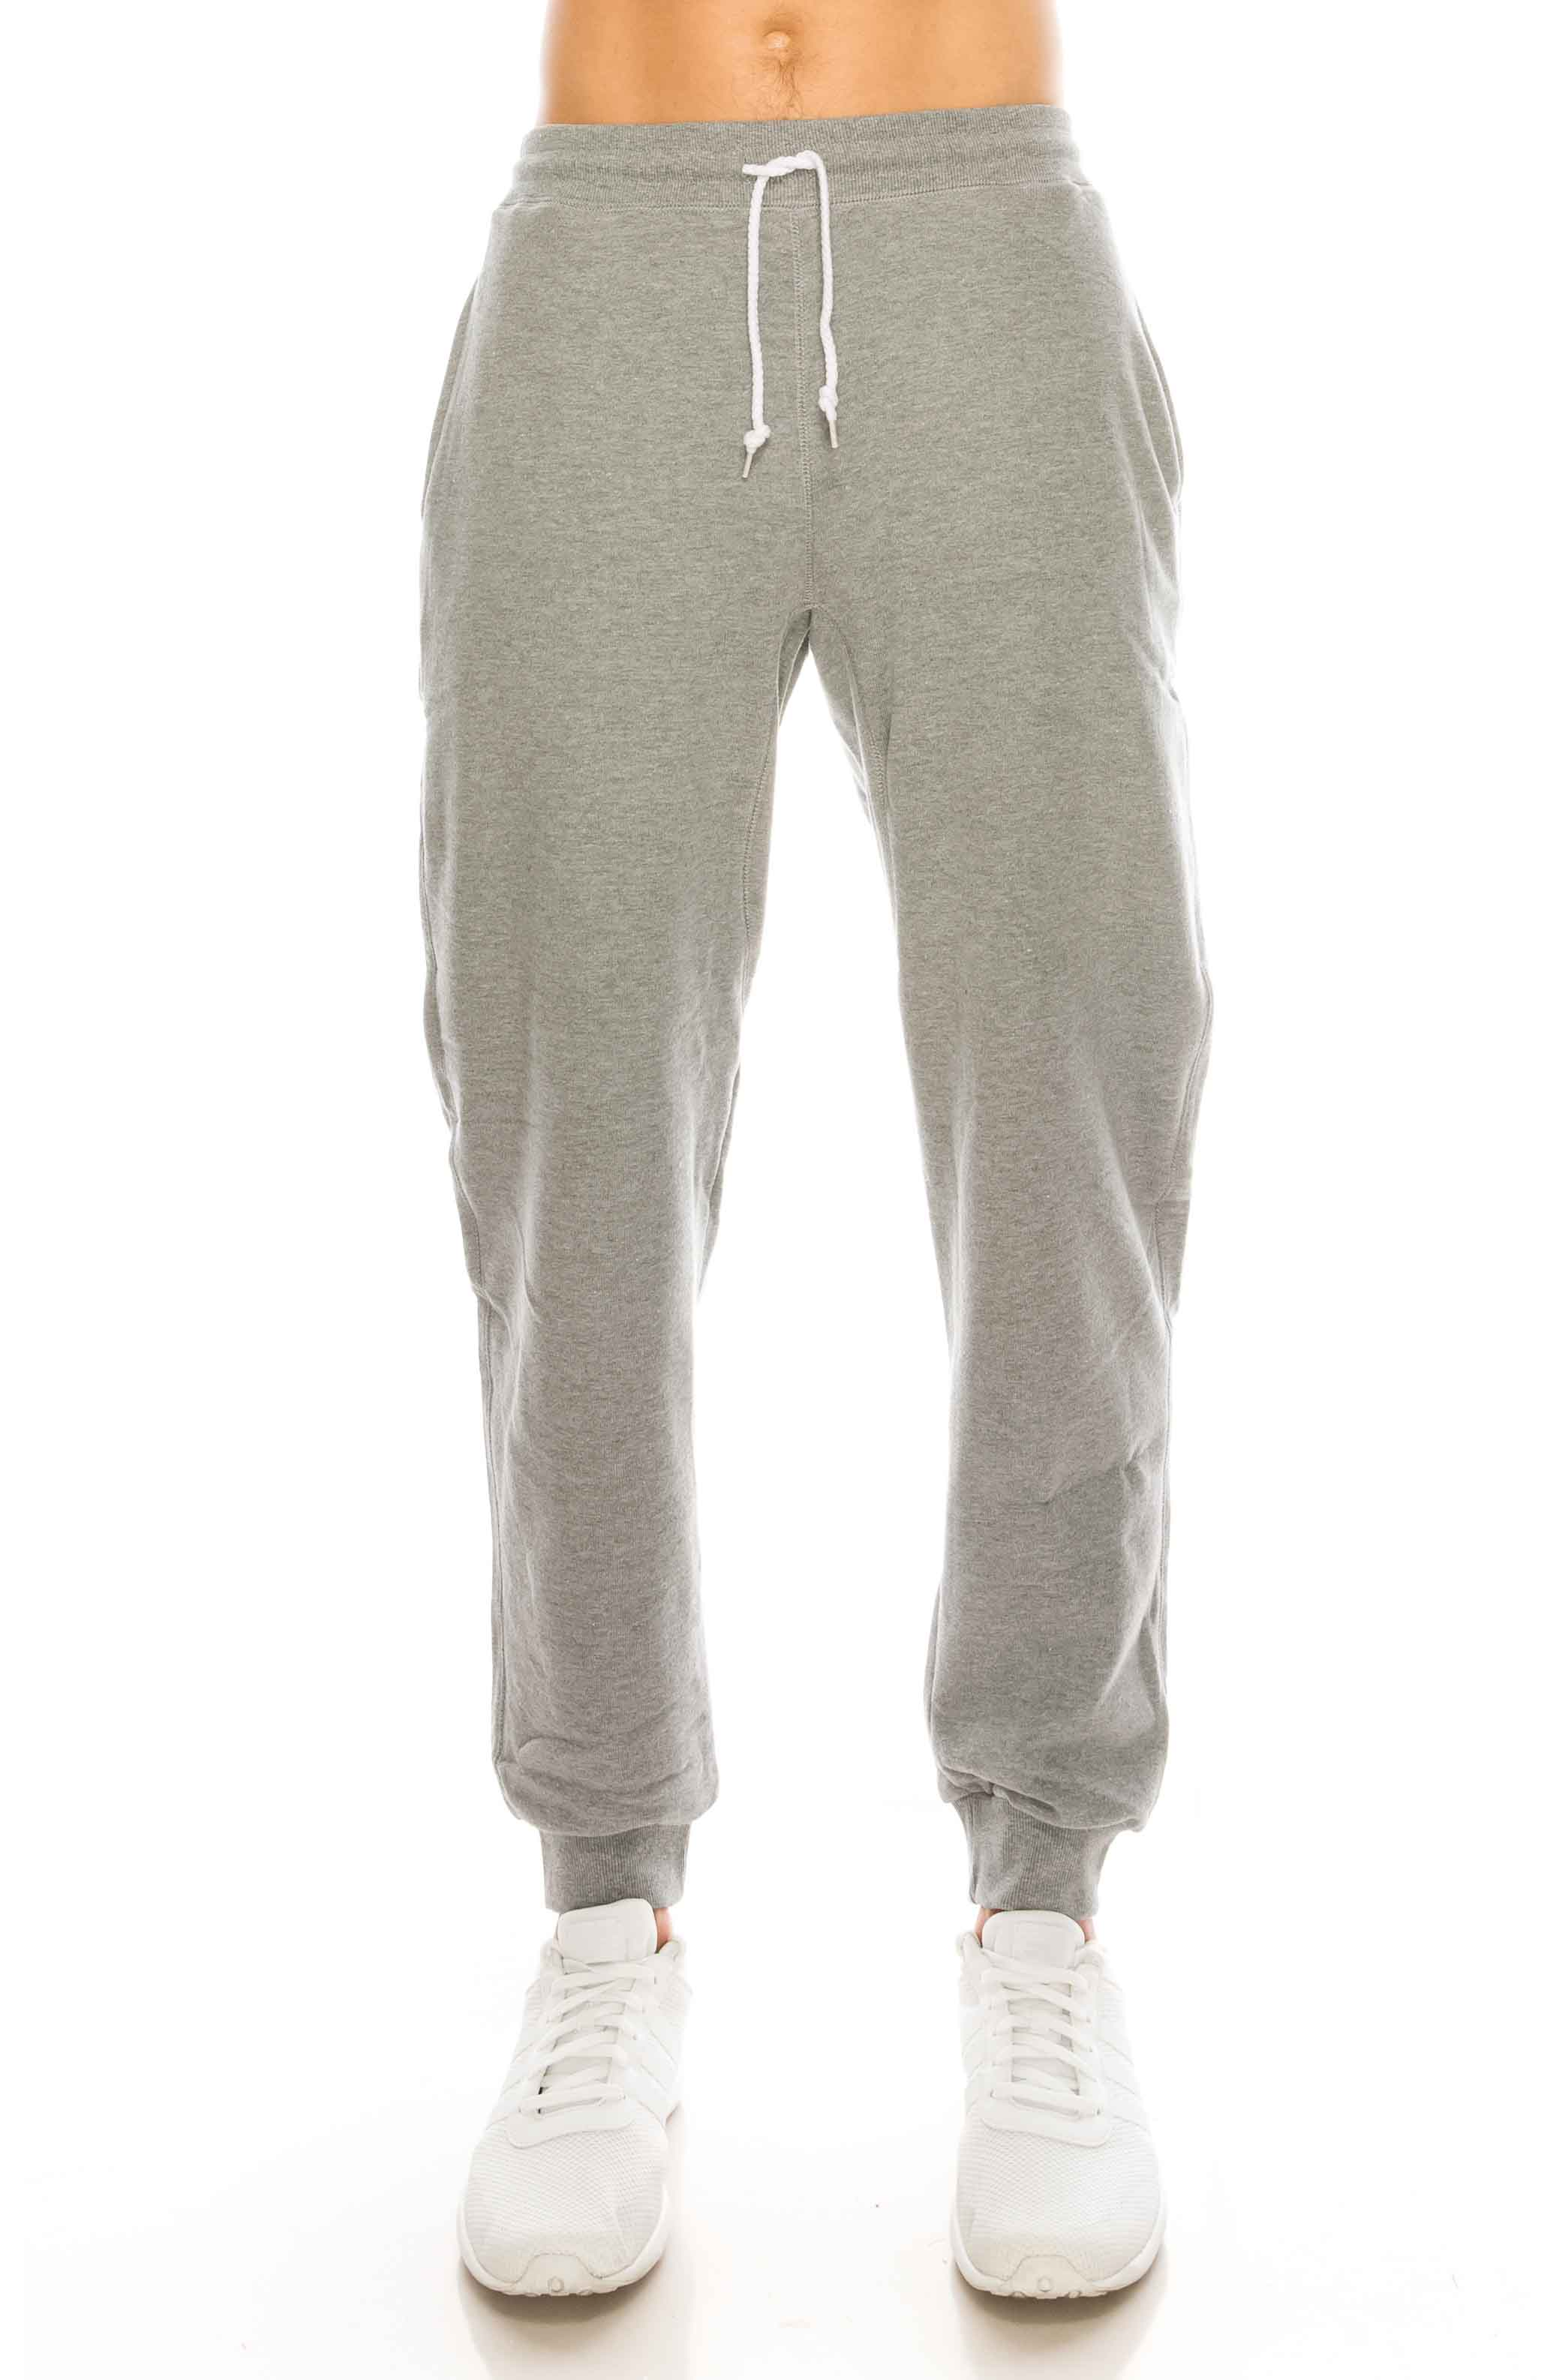 French Terry Fleece Pants 2XL - 5XL - Pro 5 Apparel